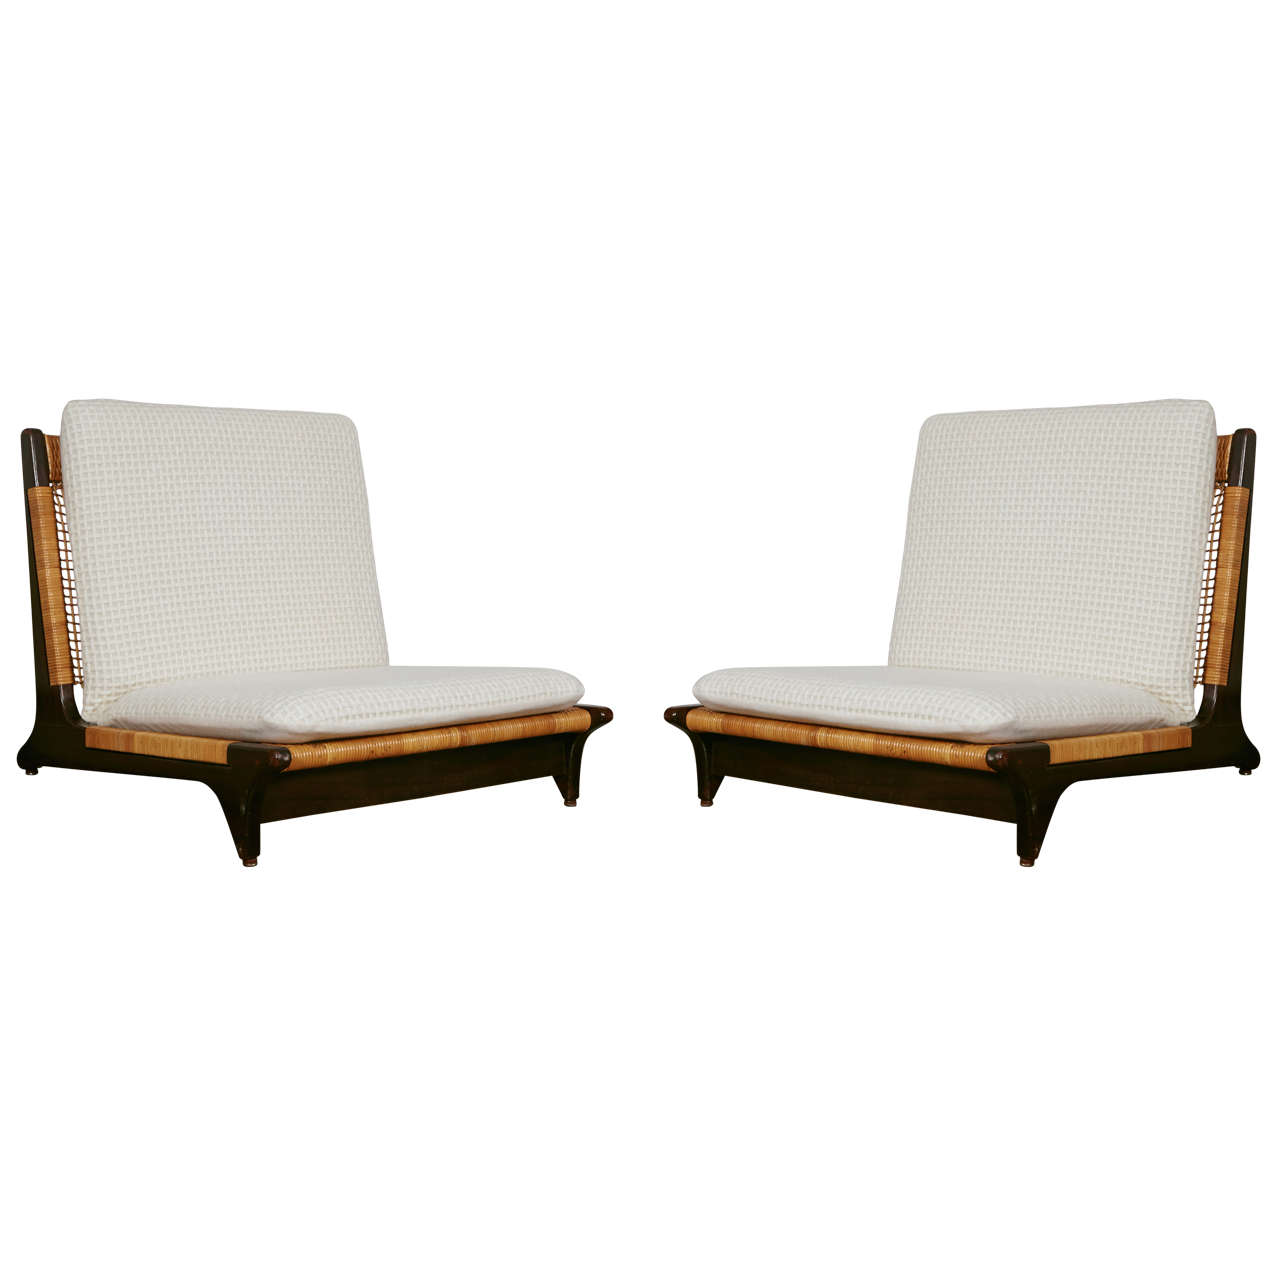 Charmant Pair Of Hans Olsen Low Chairs For Sale